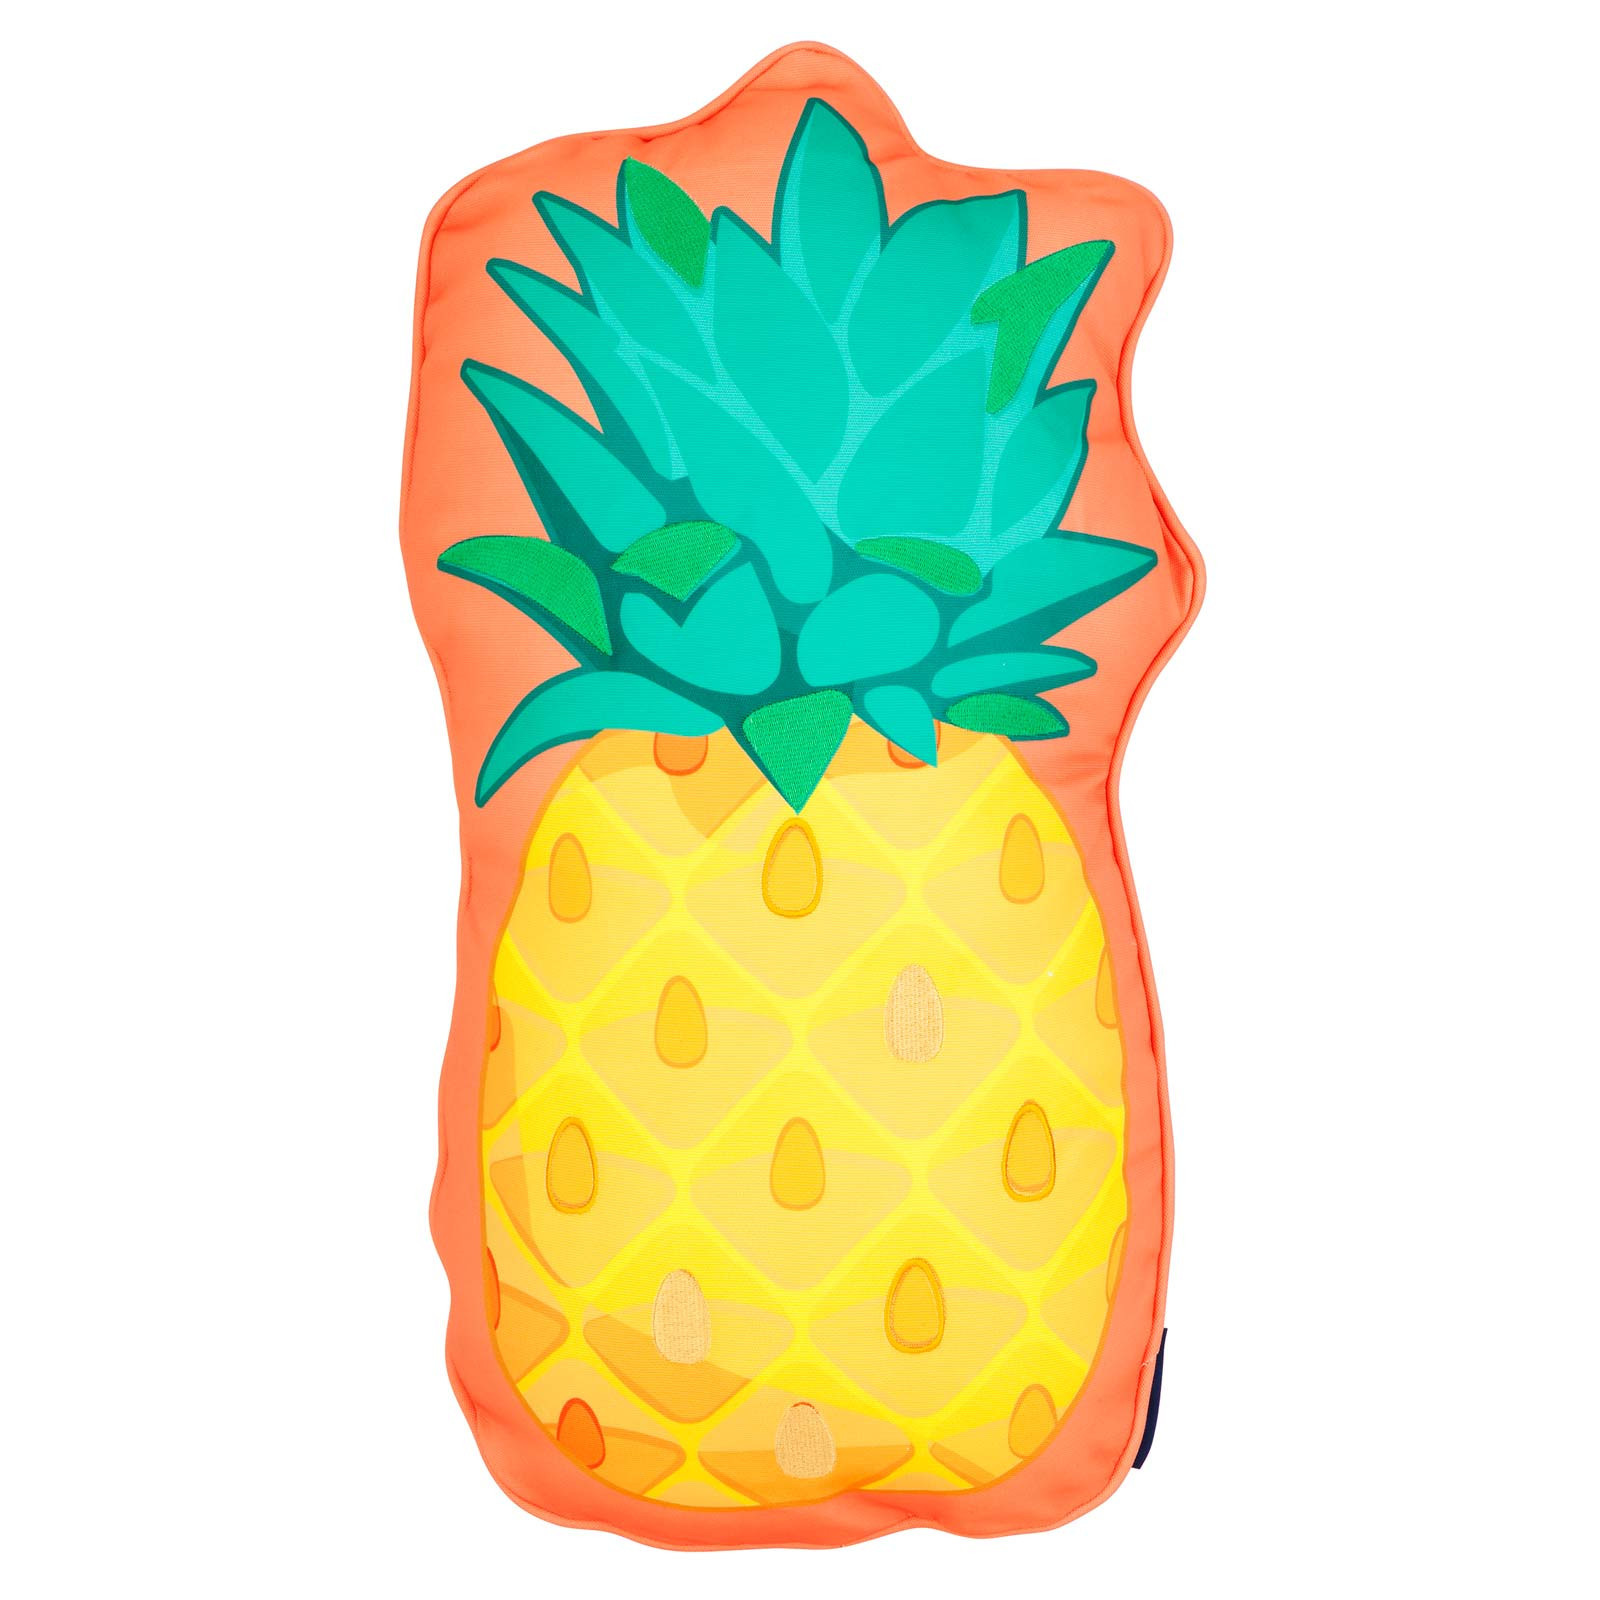 Sunnylife Indoor/Outdoor Cushion - Pineapple image